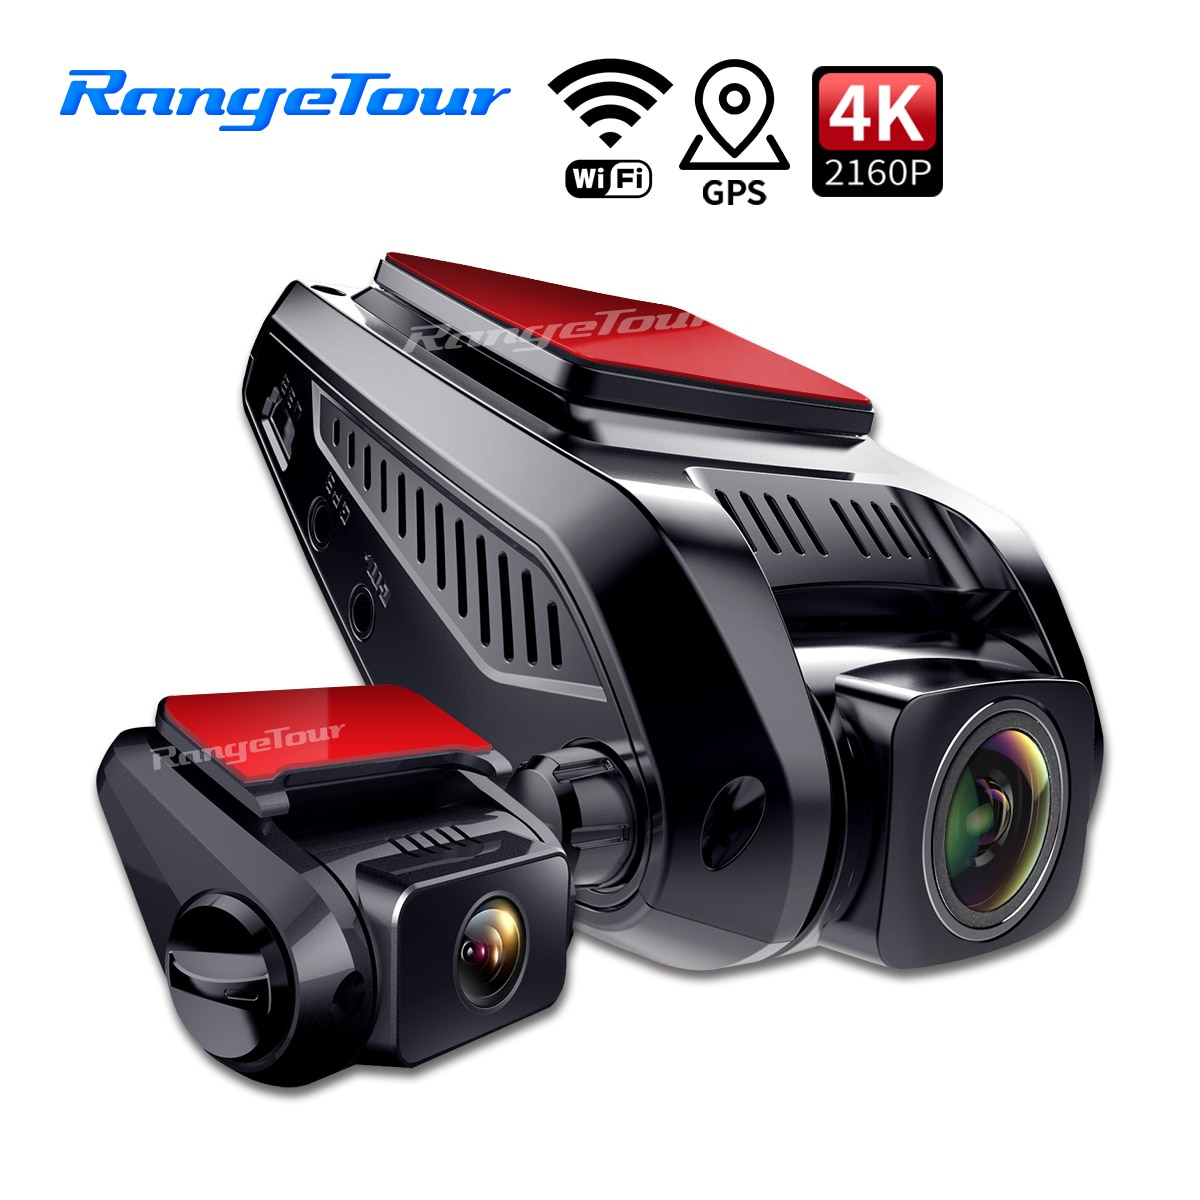 Car DVR Camera 4K 2160P Build In GPS WiFi ADAS Dash Cam  Front and Rear Both 1080P Driving Recorder Motion Detection 24H Parking